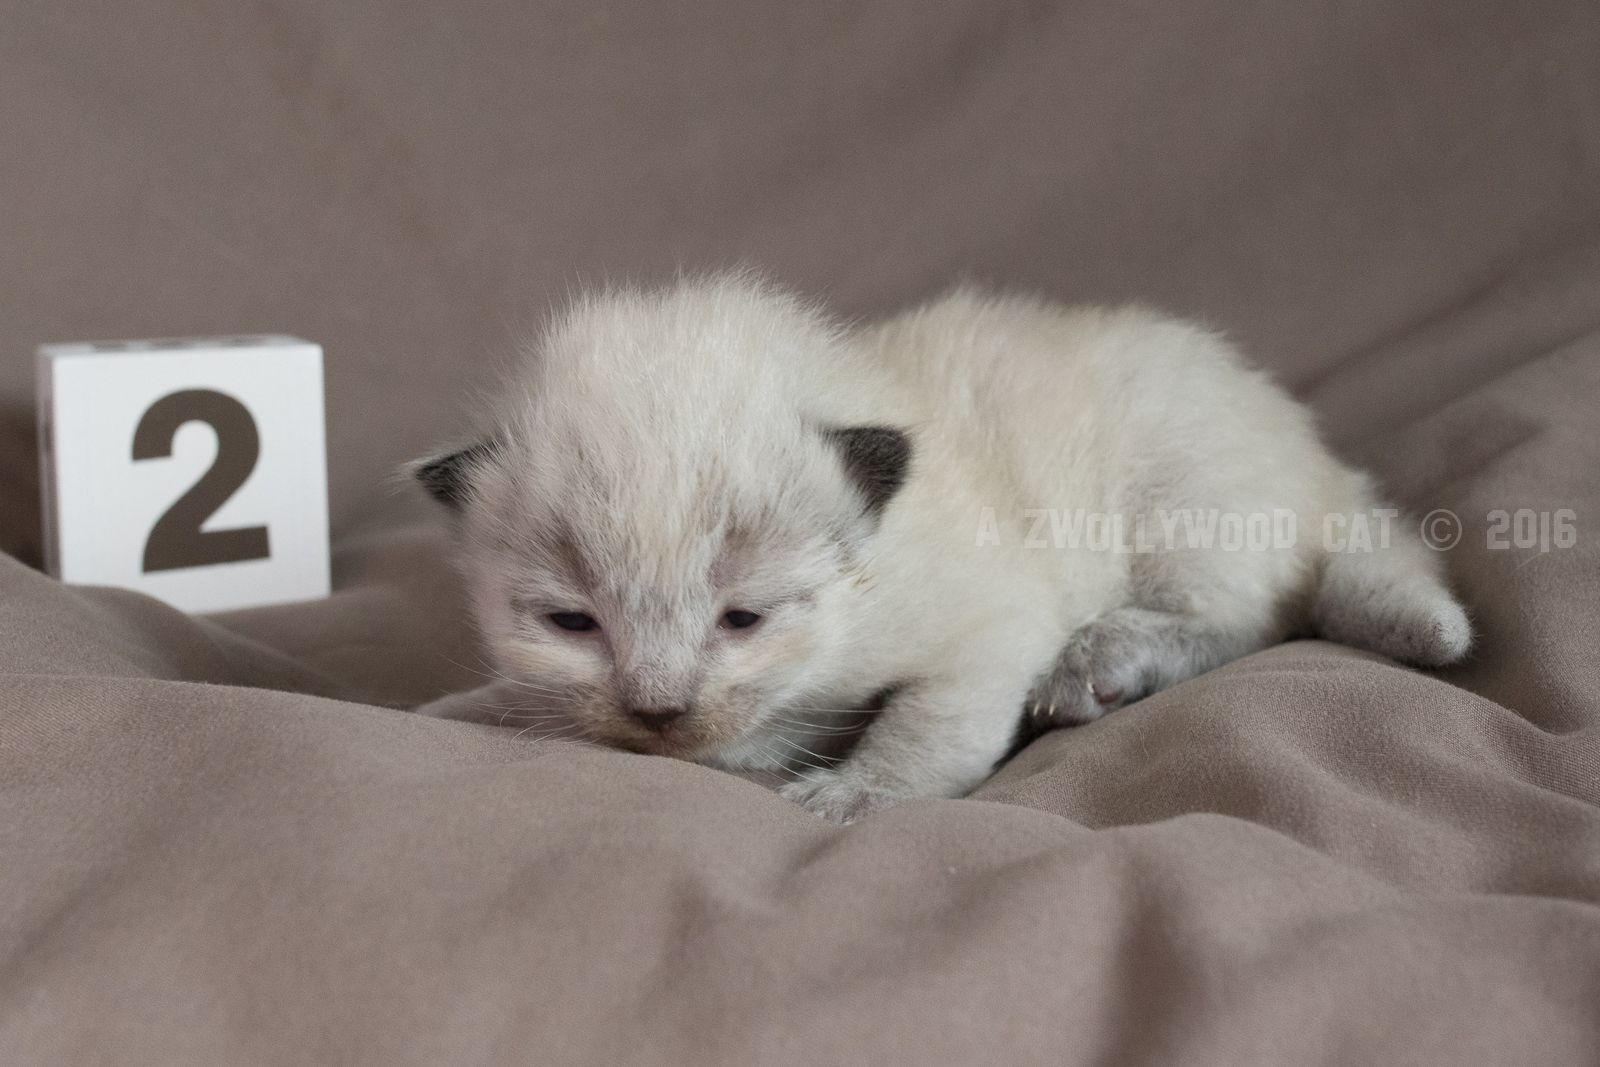 2016 Dino A Zwollywood Cat 2 Weeks Old Ragdoll Kitten Seal Colourpoint Flintstones Litter Ragdoll Kitten Fur Babies